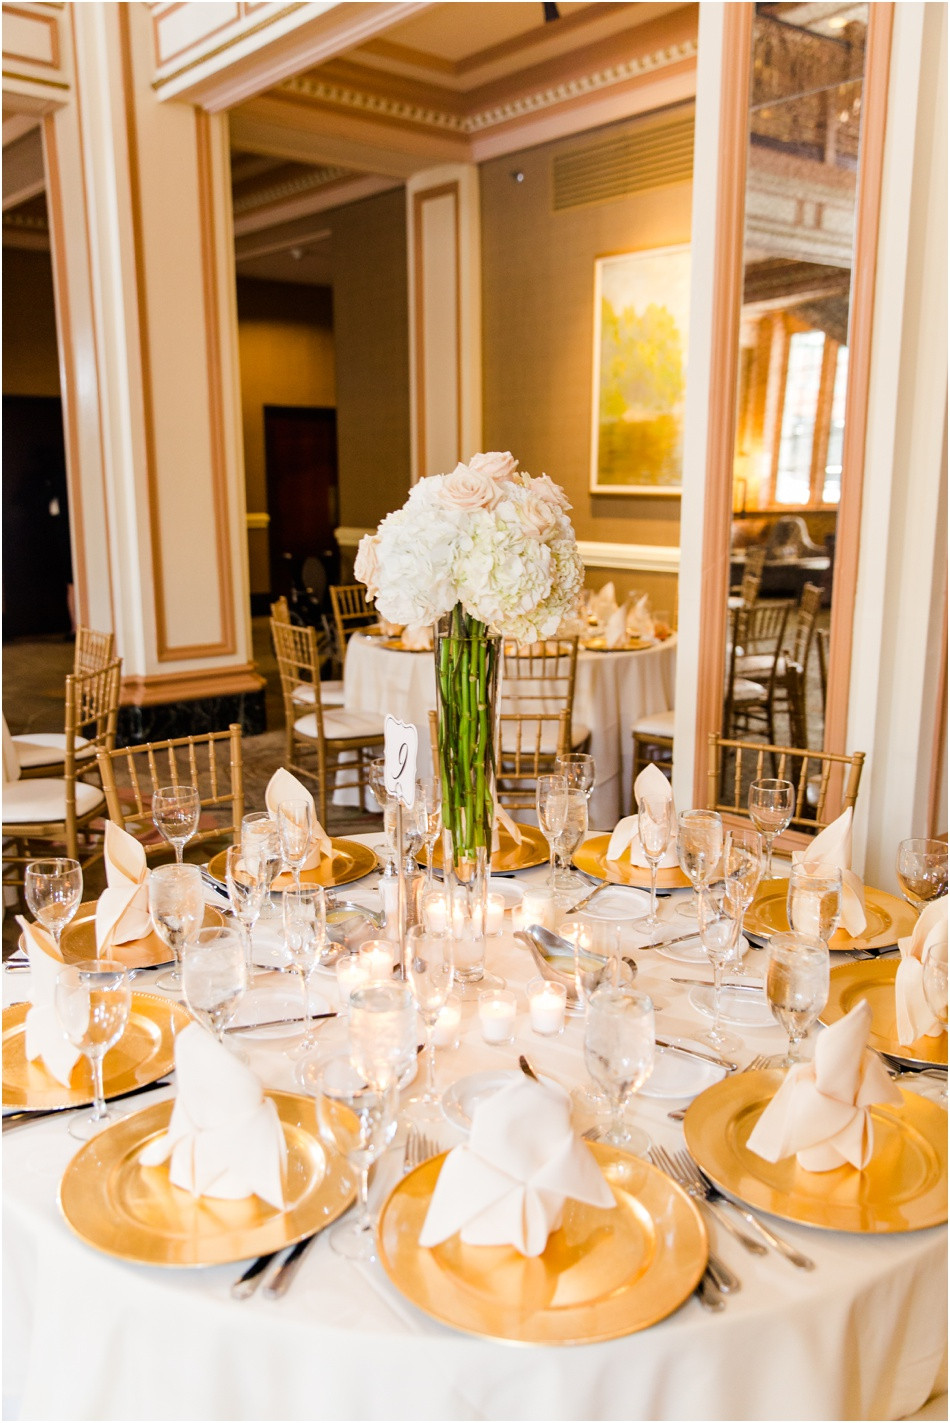 Omni-Severin-Hotel-Indianapolis-Wedding-Reception